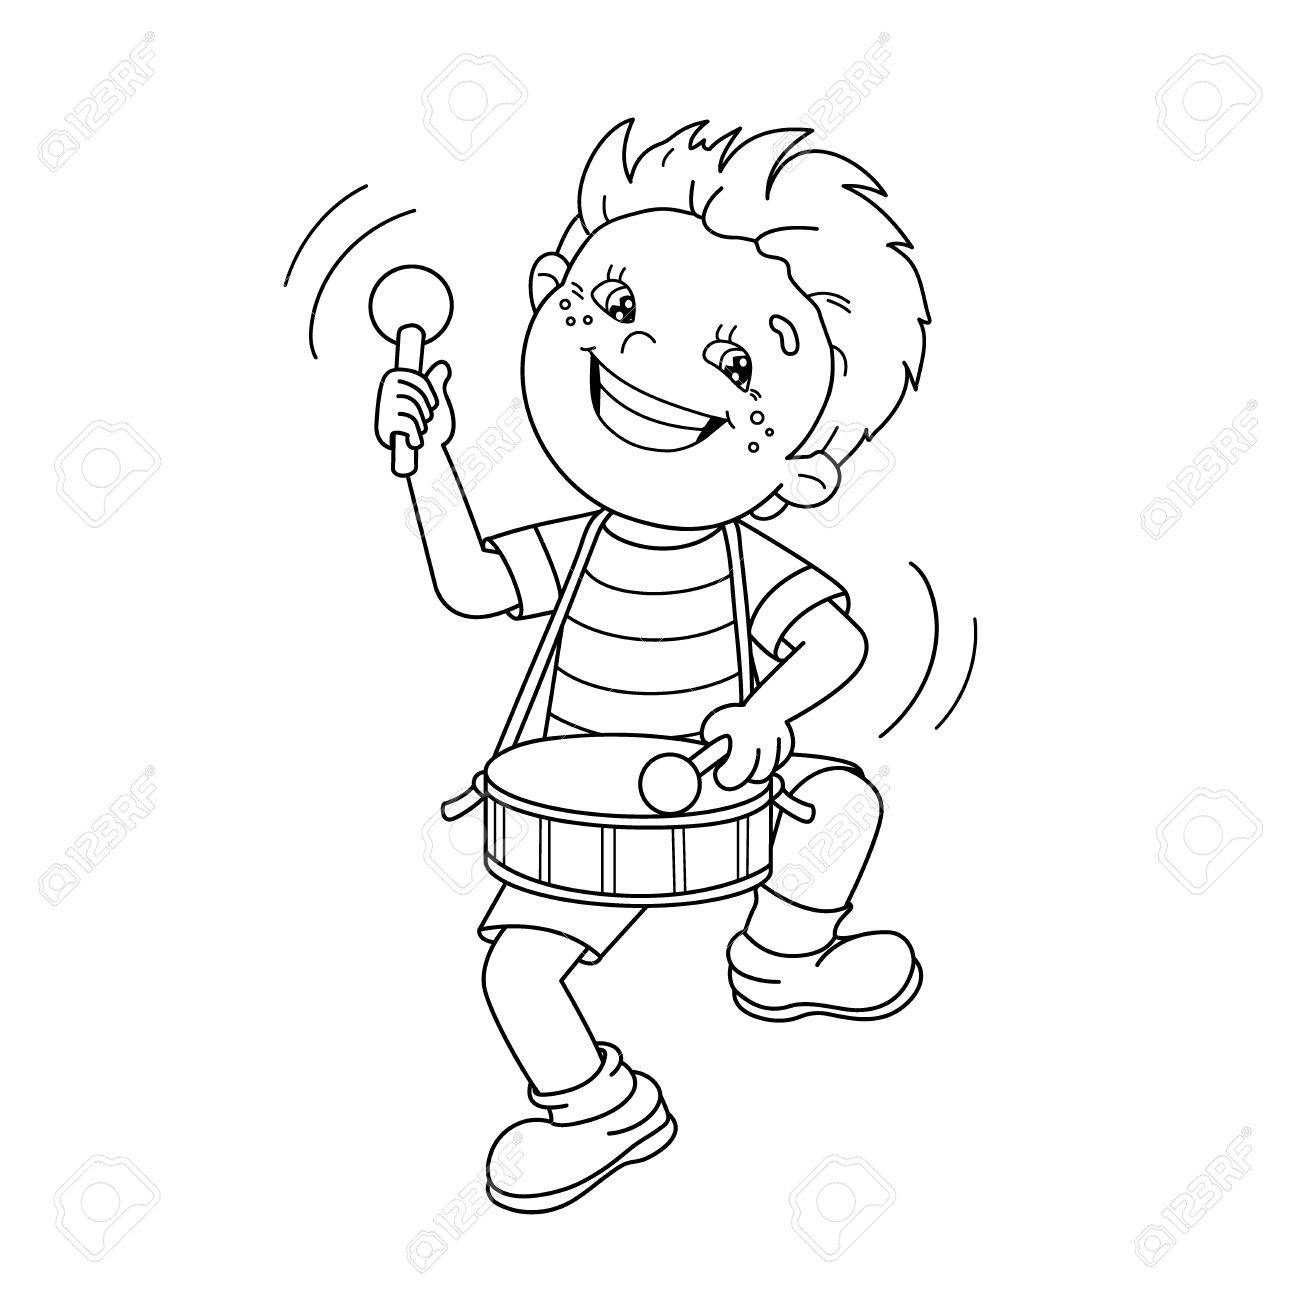 Coloring Page Outline Of Cartoon Boy Playing The Drum Musical